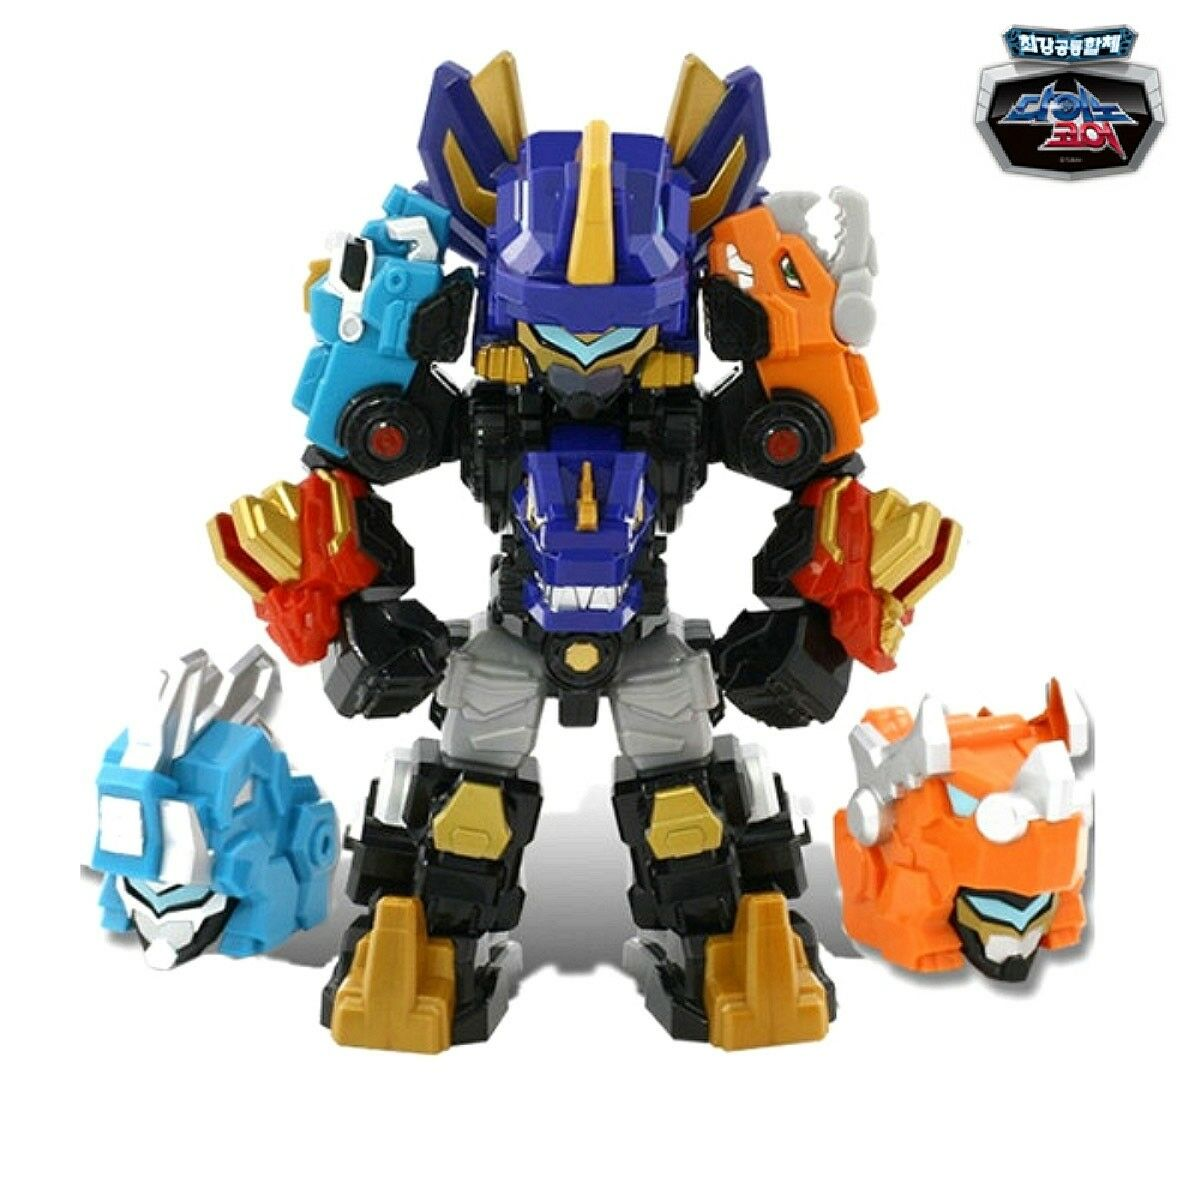 DinoCore Mini 8 inch Ultra D Saber 3 Stages Transformable Robot + Gift